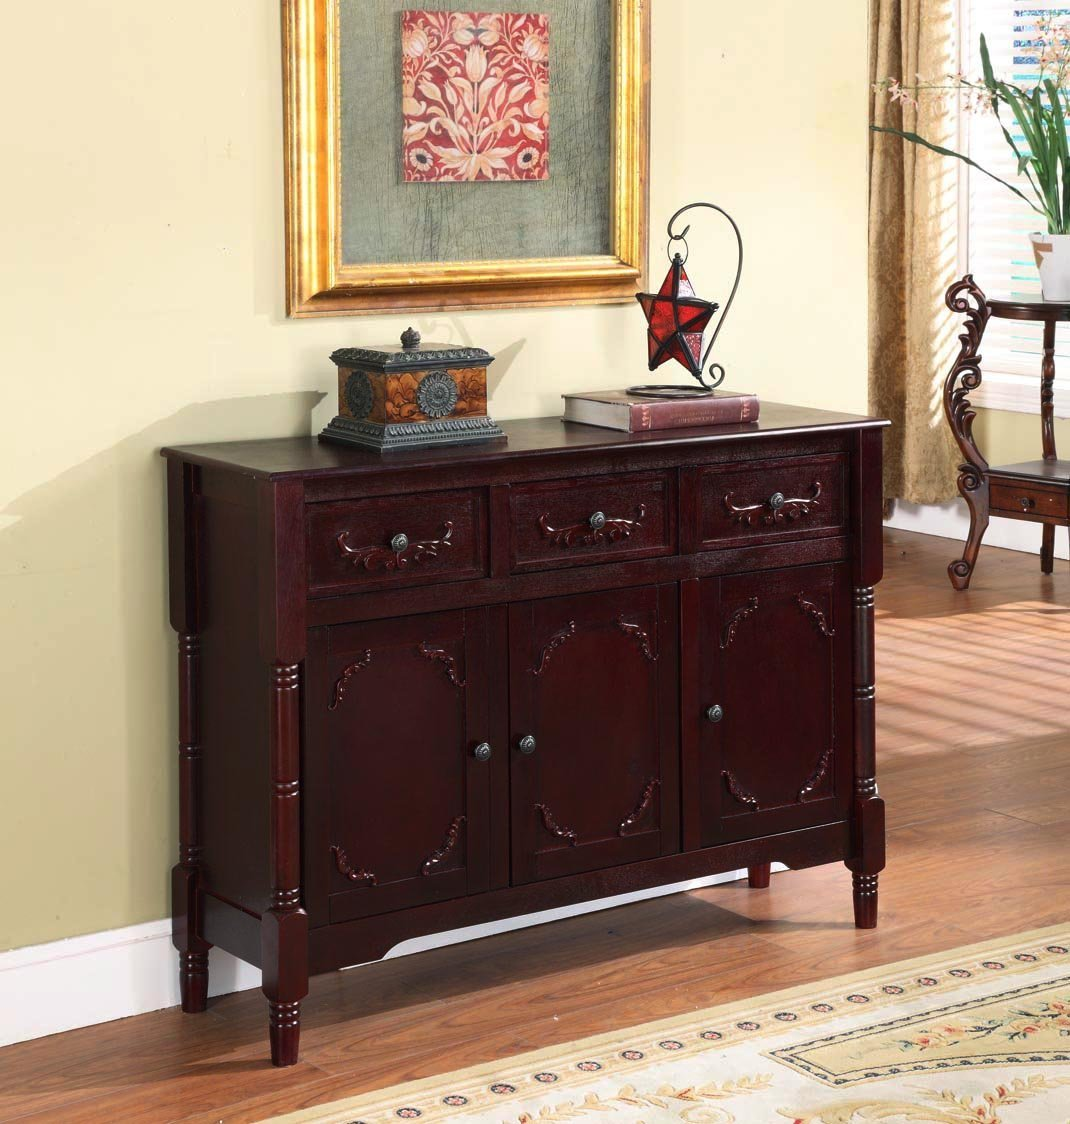 Amazon Com Kings Brand R Wood Console Sideboard Table With Drawers And Storage Cherry Finish Buffets Sideboards